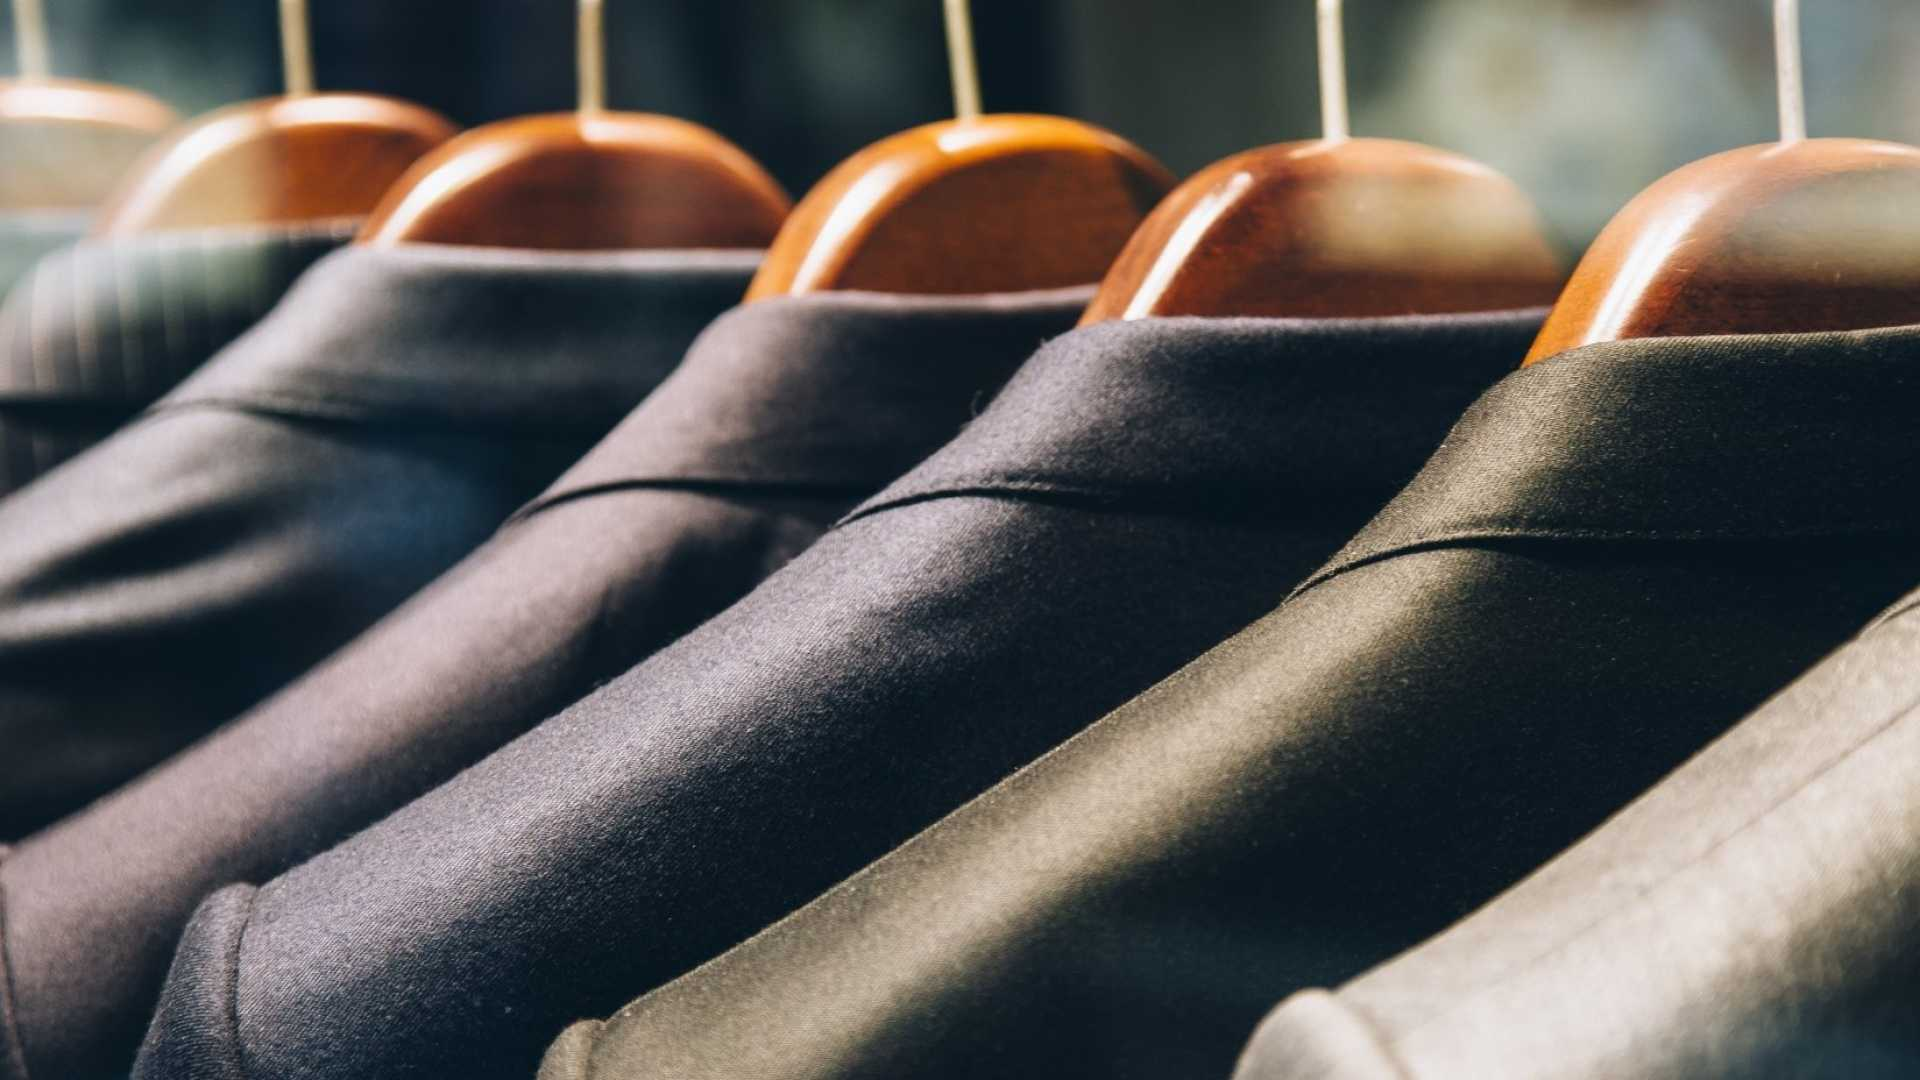 5 Reasons to Ban Business Suits From Your Office